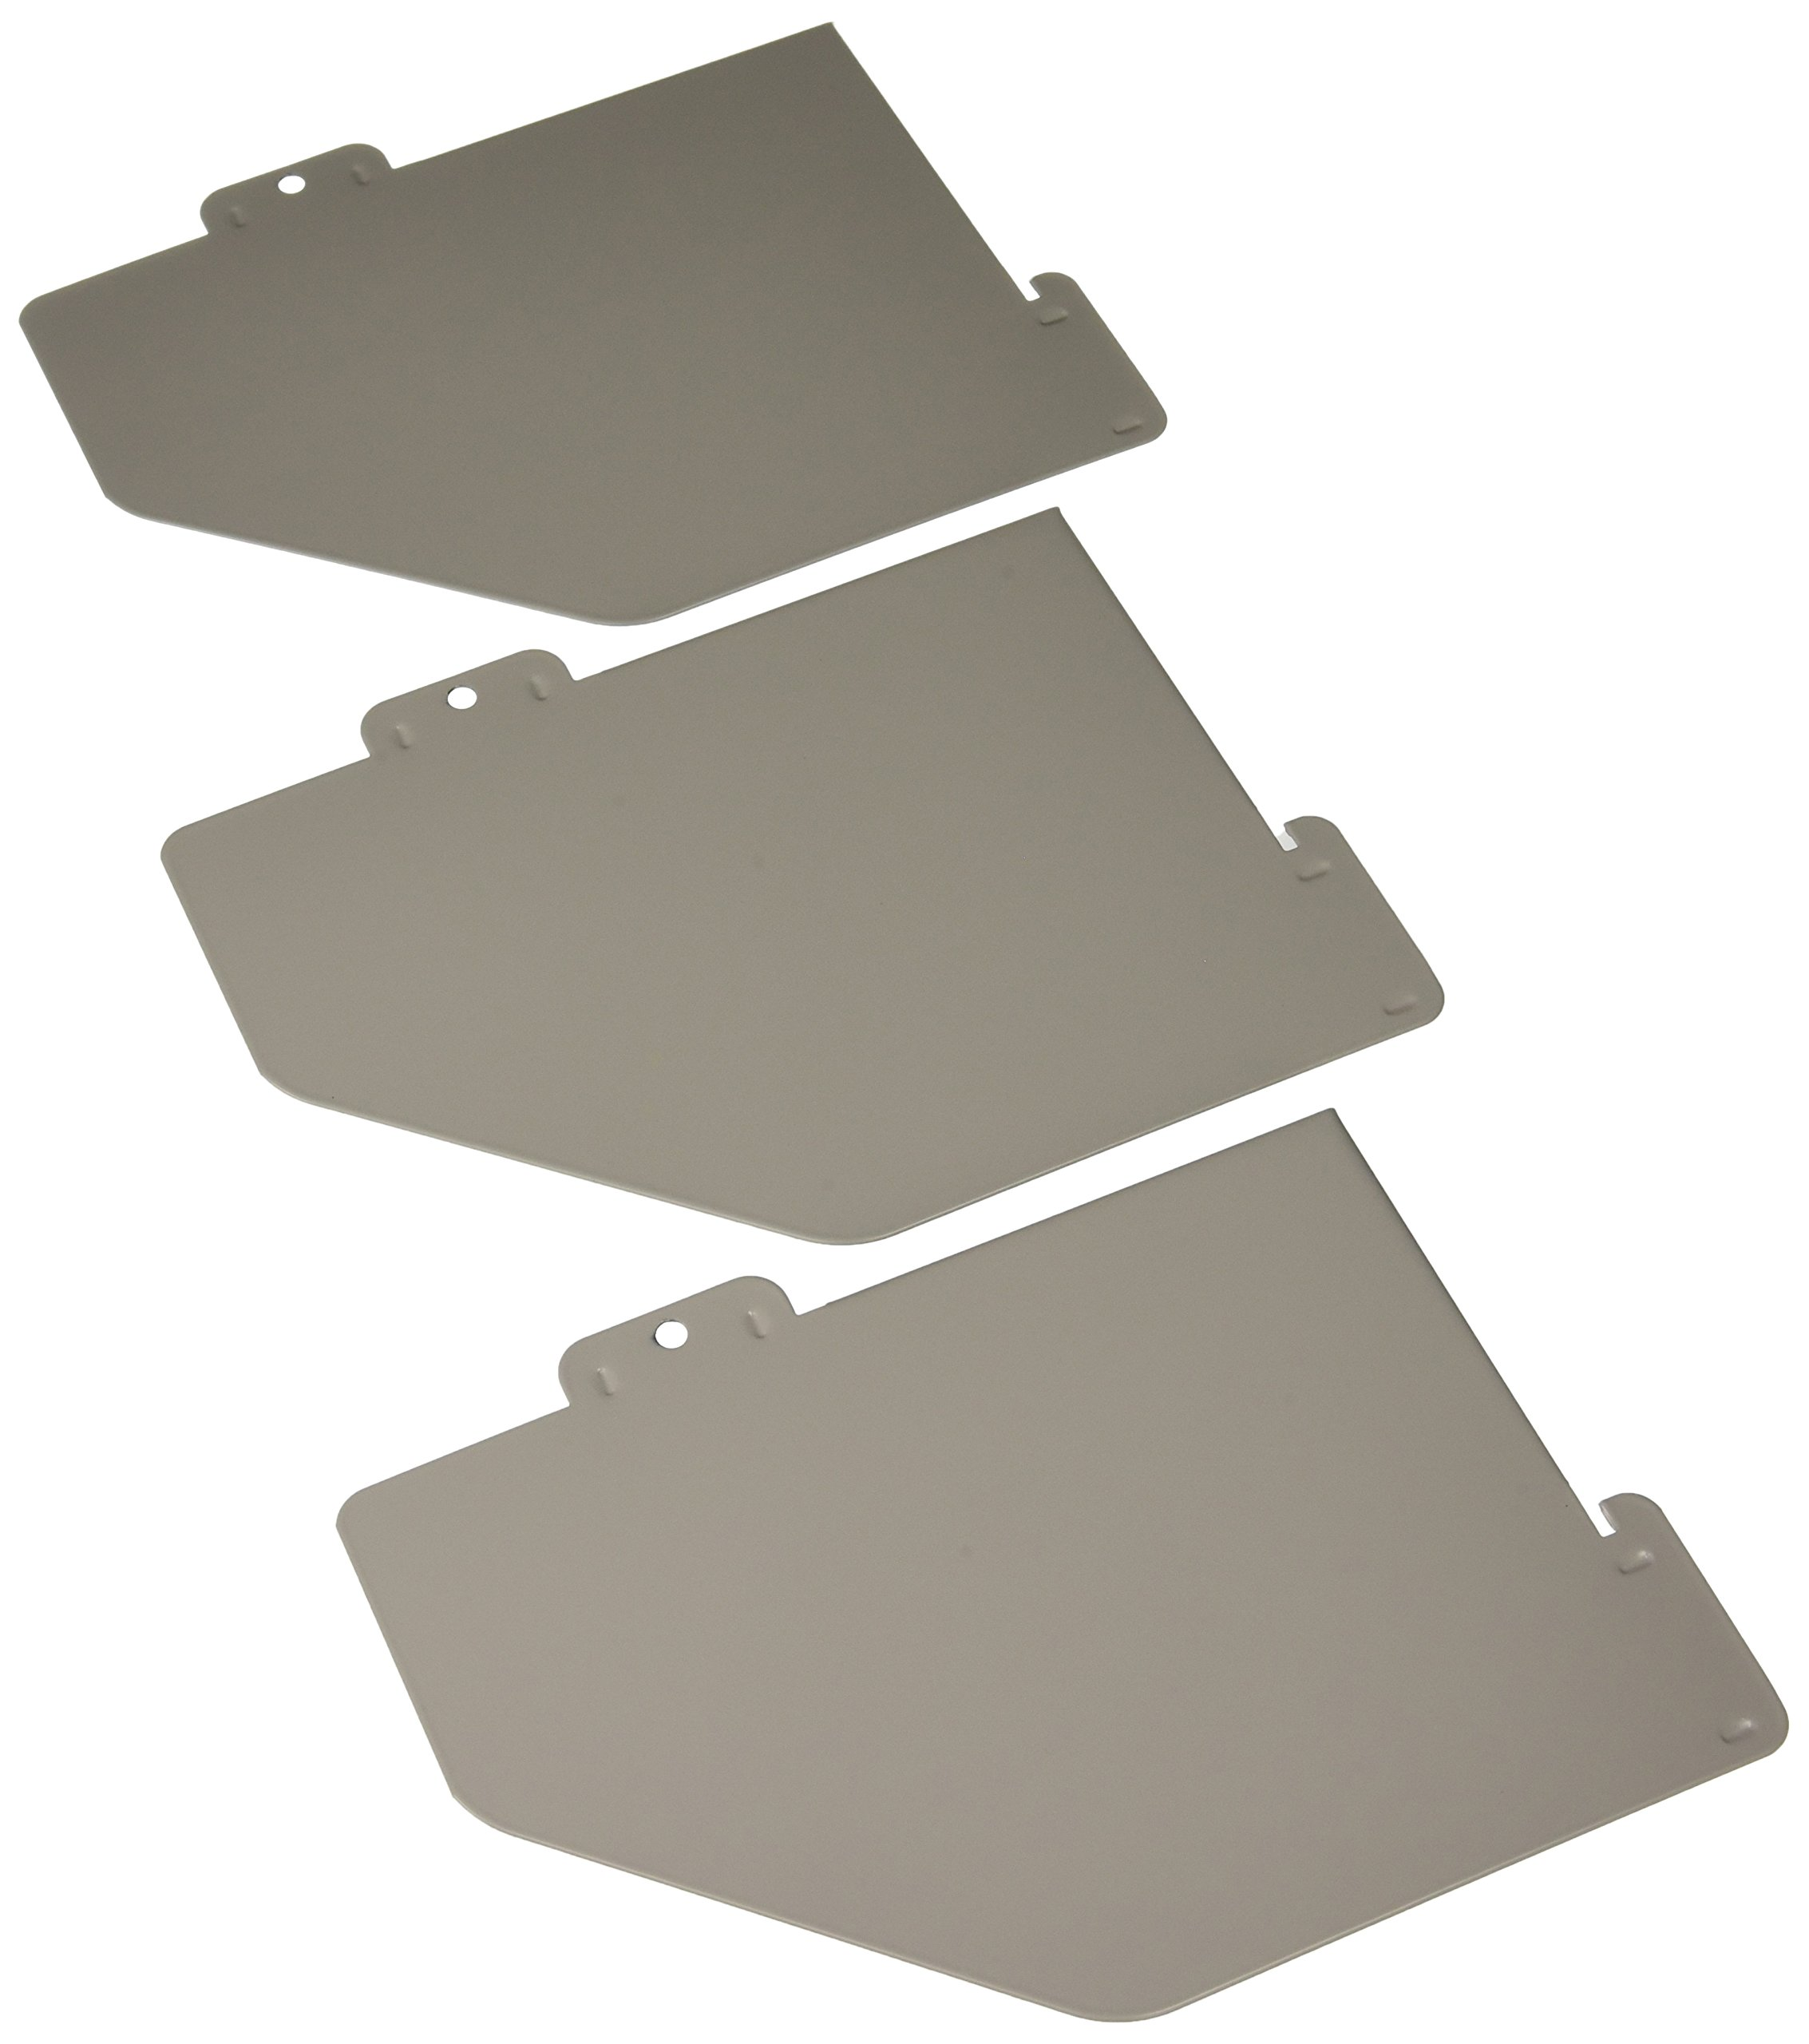 Buddy Products Three Pack Shelf Dividers for Rolling Carts, Steel, .25 x 9 x 11 Inches, Platinum (5425-32)